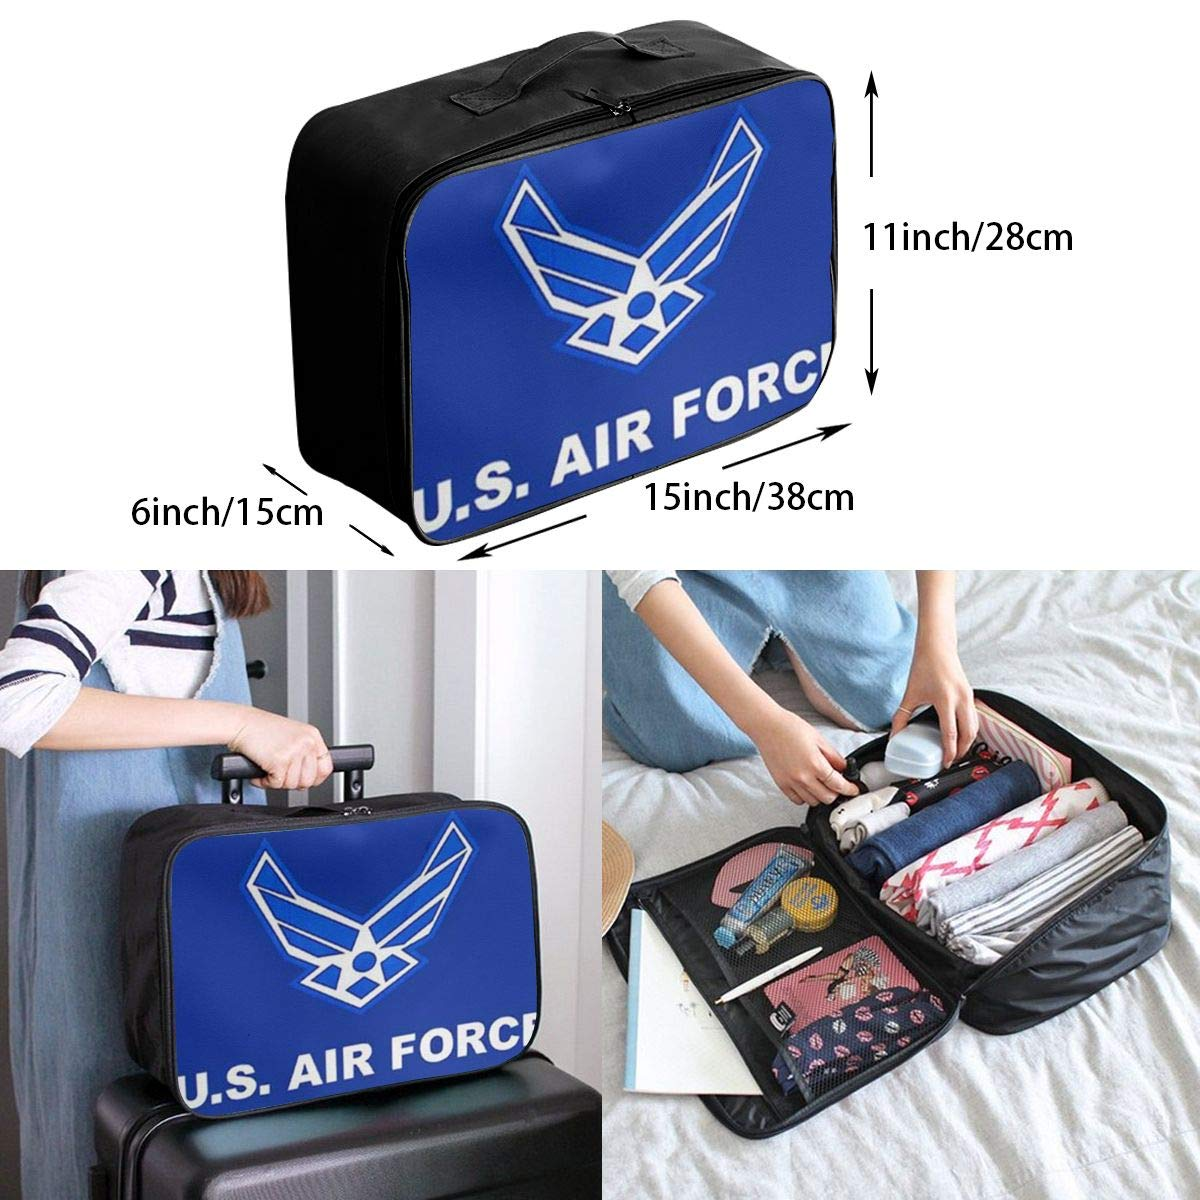 ADGAI Air Force Military Flag Canvas Travel Weekender Bag,Fashion Custom Lightweight Large Capacity Portable Luggage Bag,Suitcase Trolley Bag